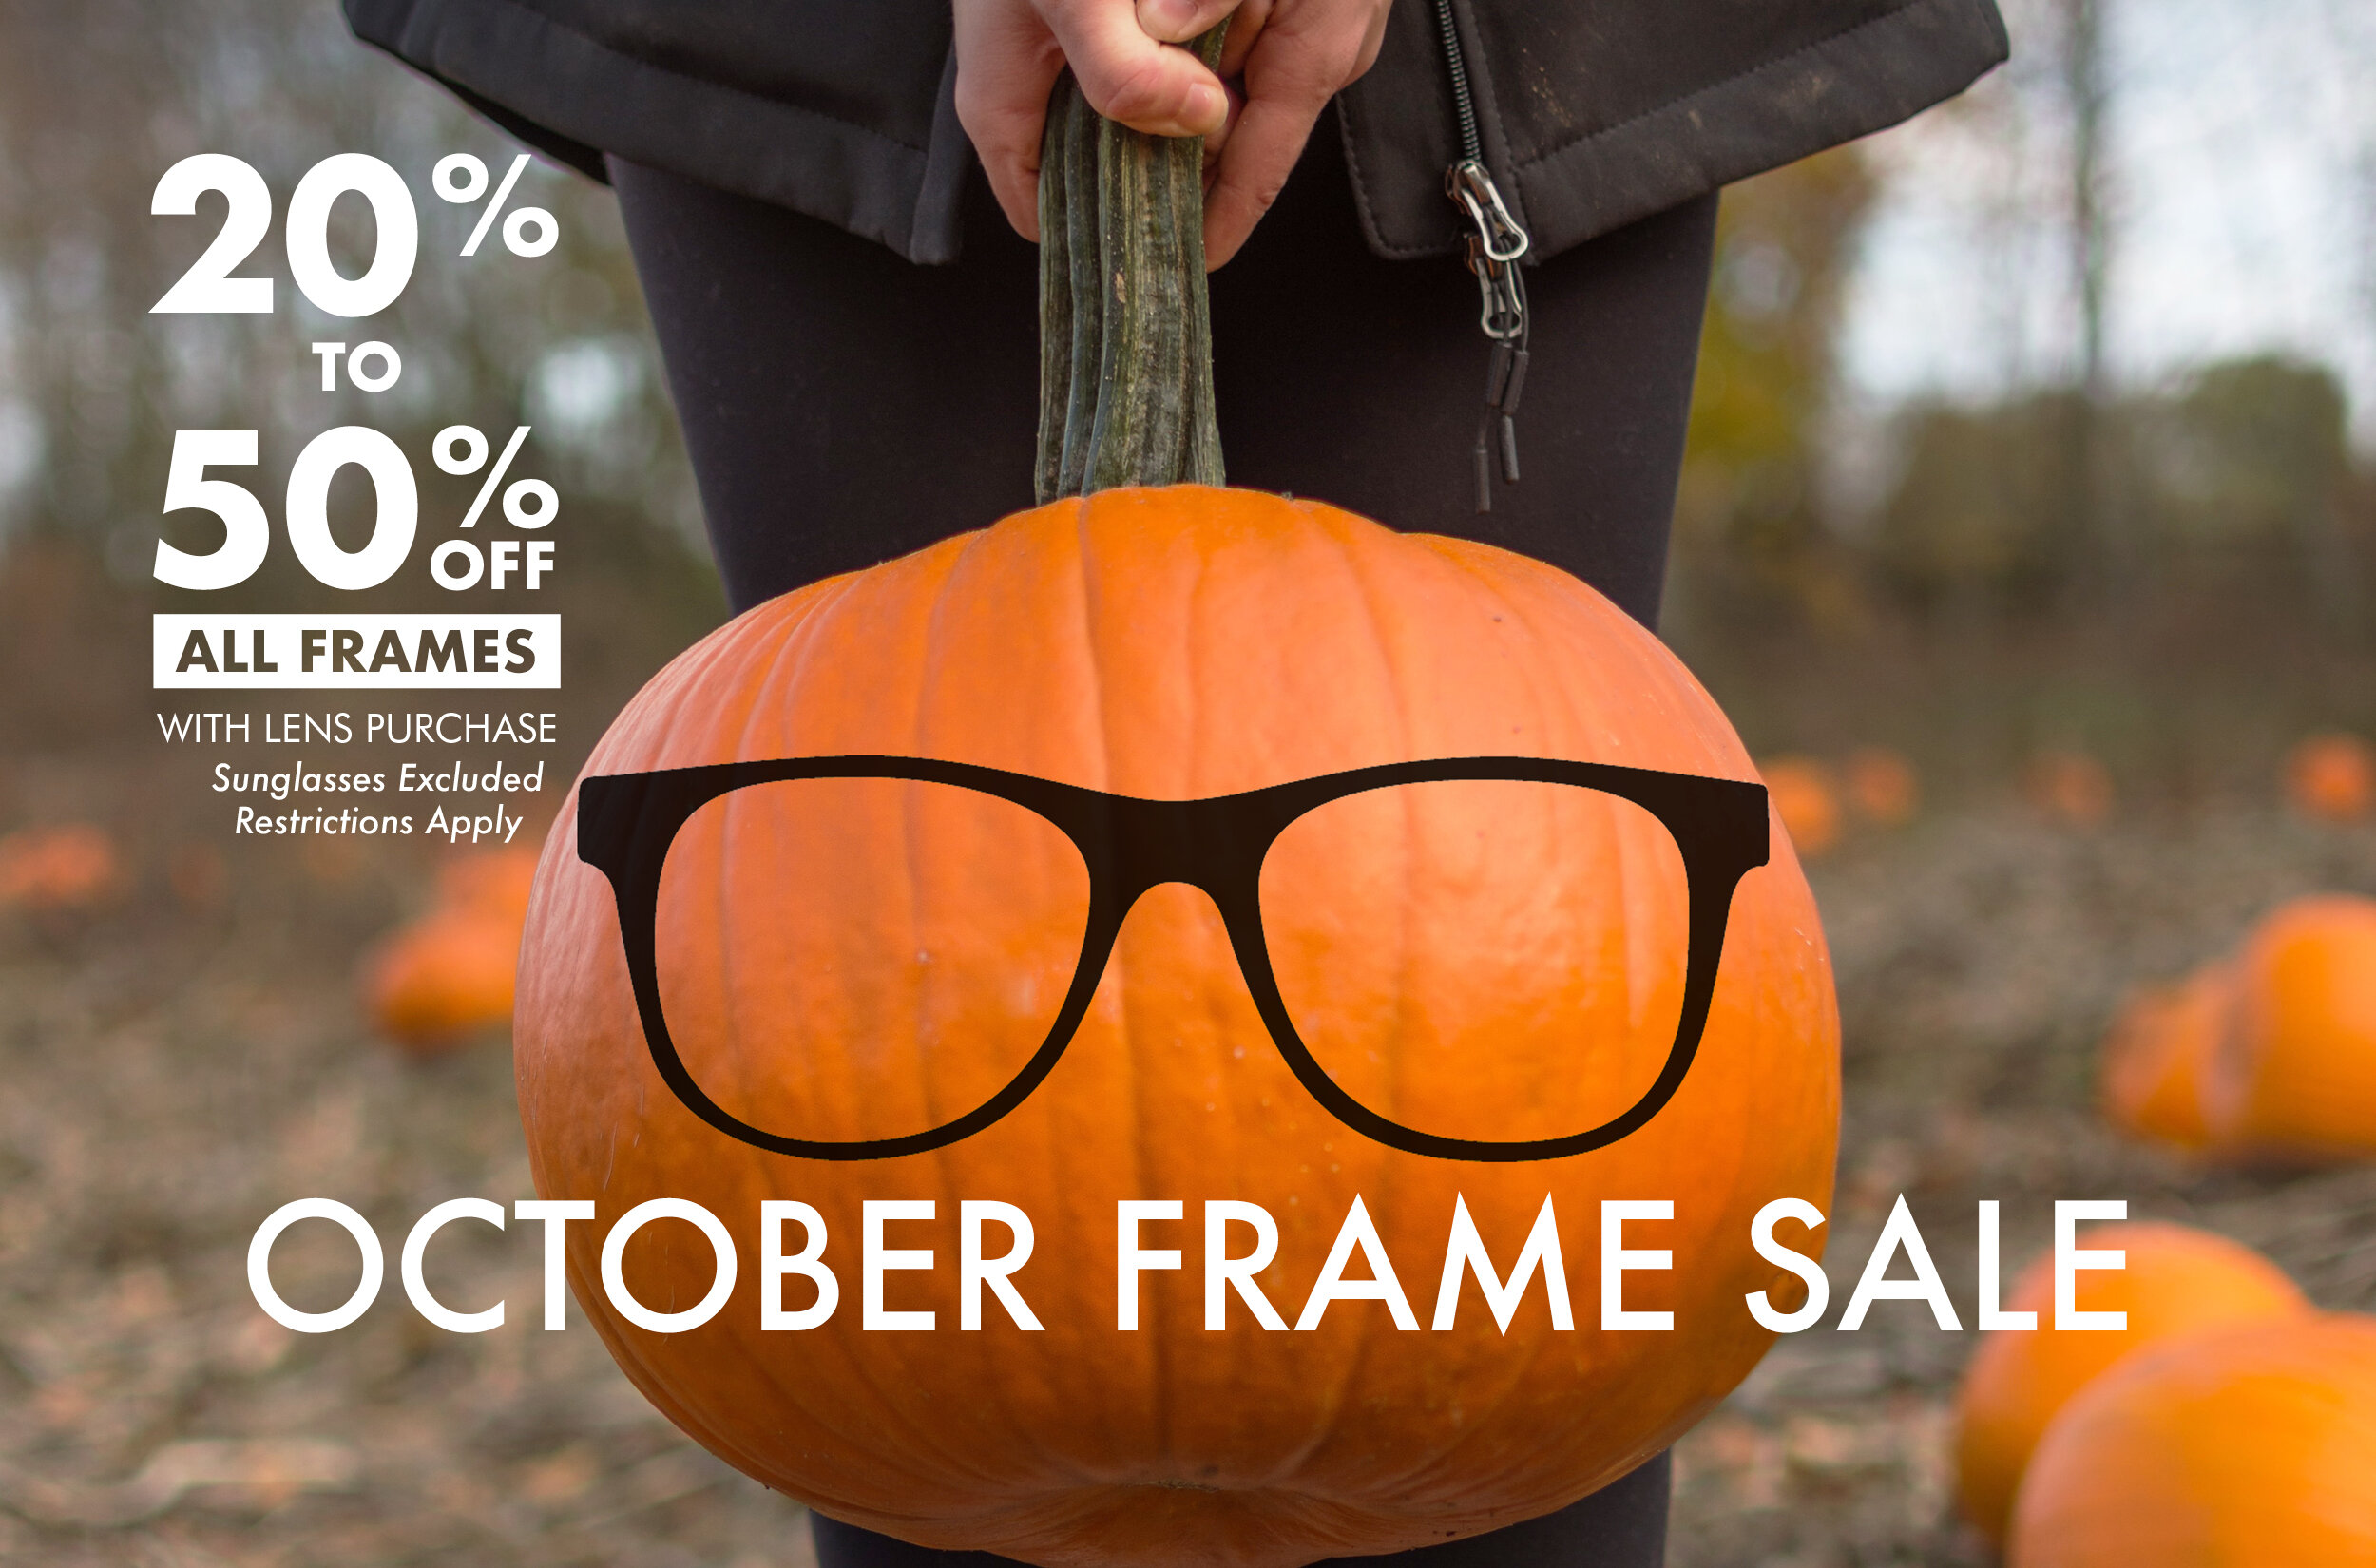 10_05_AEC_October-Frame Sale_ad-1 WEB.jpg